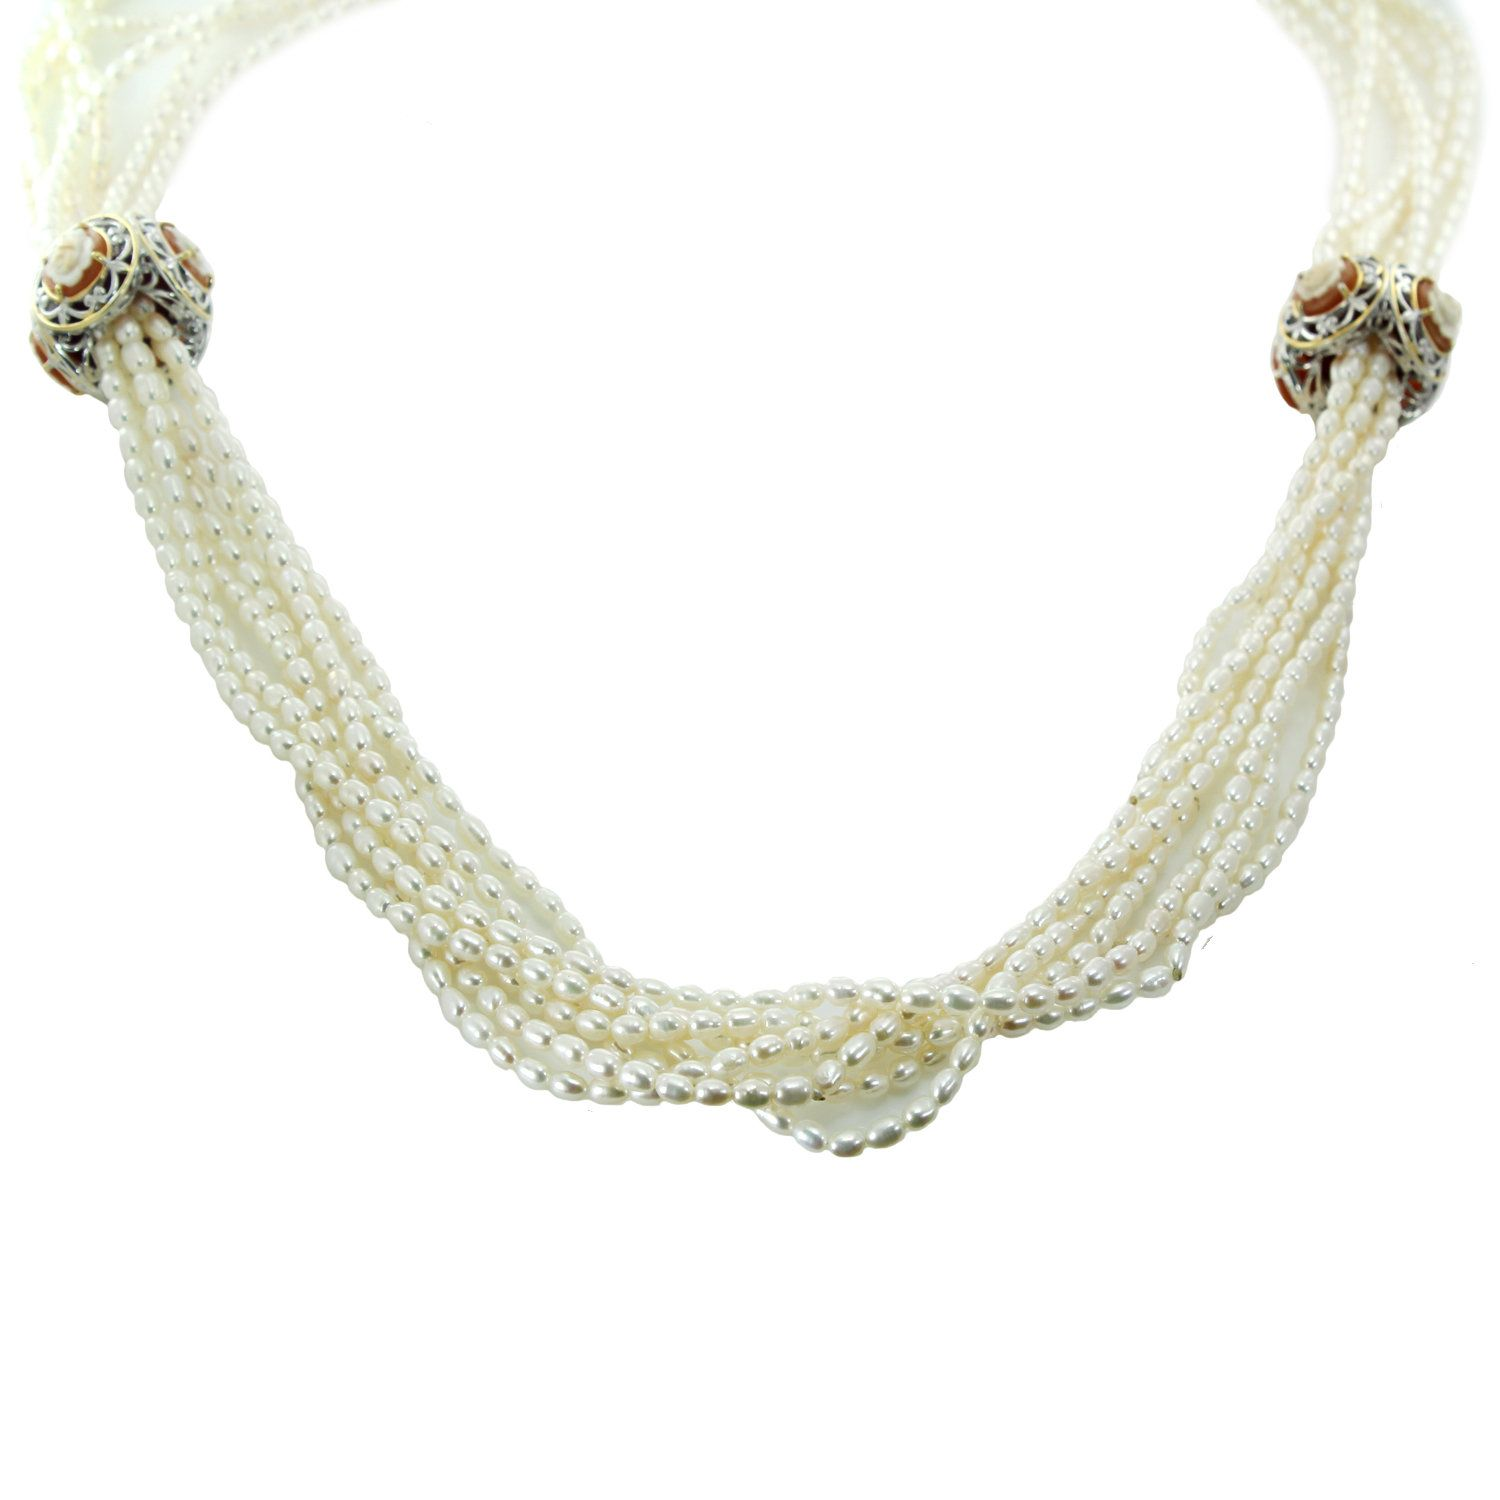 (,500) One-of-a-Kind Jewelry: Free Shipping on orders over $45 at Overstock.com - Your Online Jewelry Store! Get 5% in rewards with Club O!